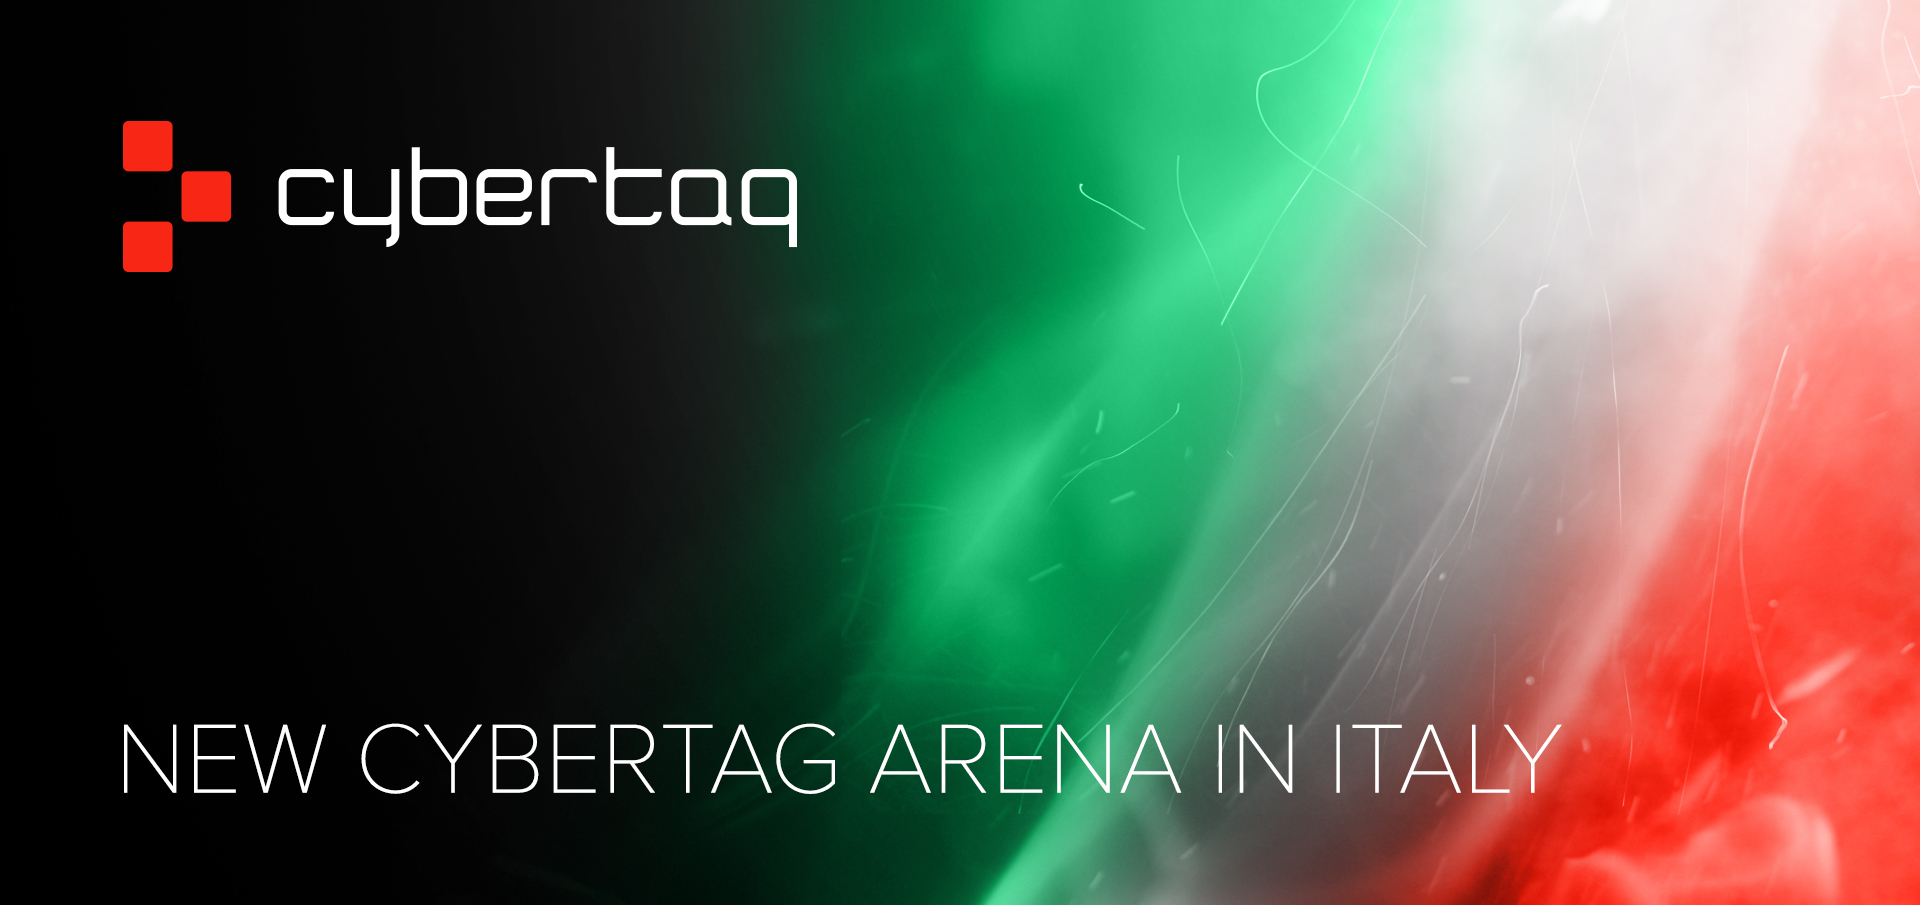 New CYBERTAG arena in Italy